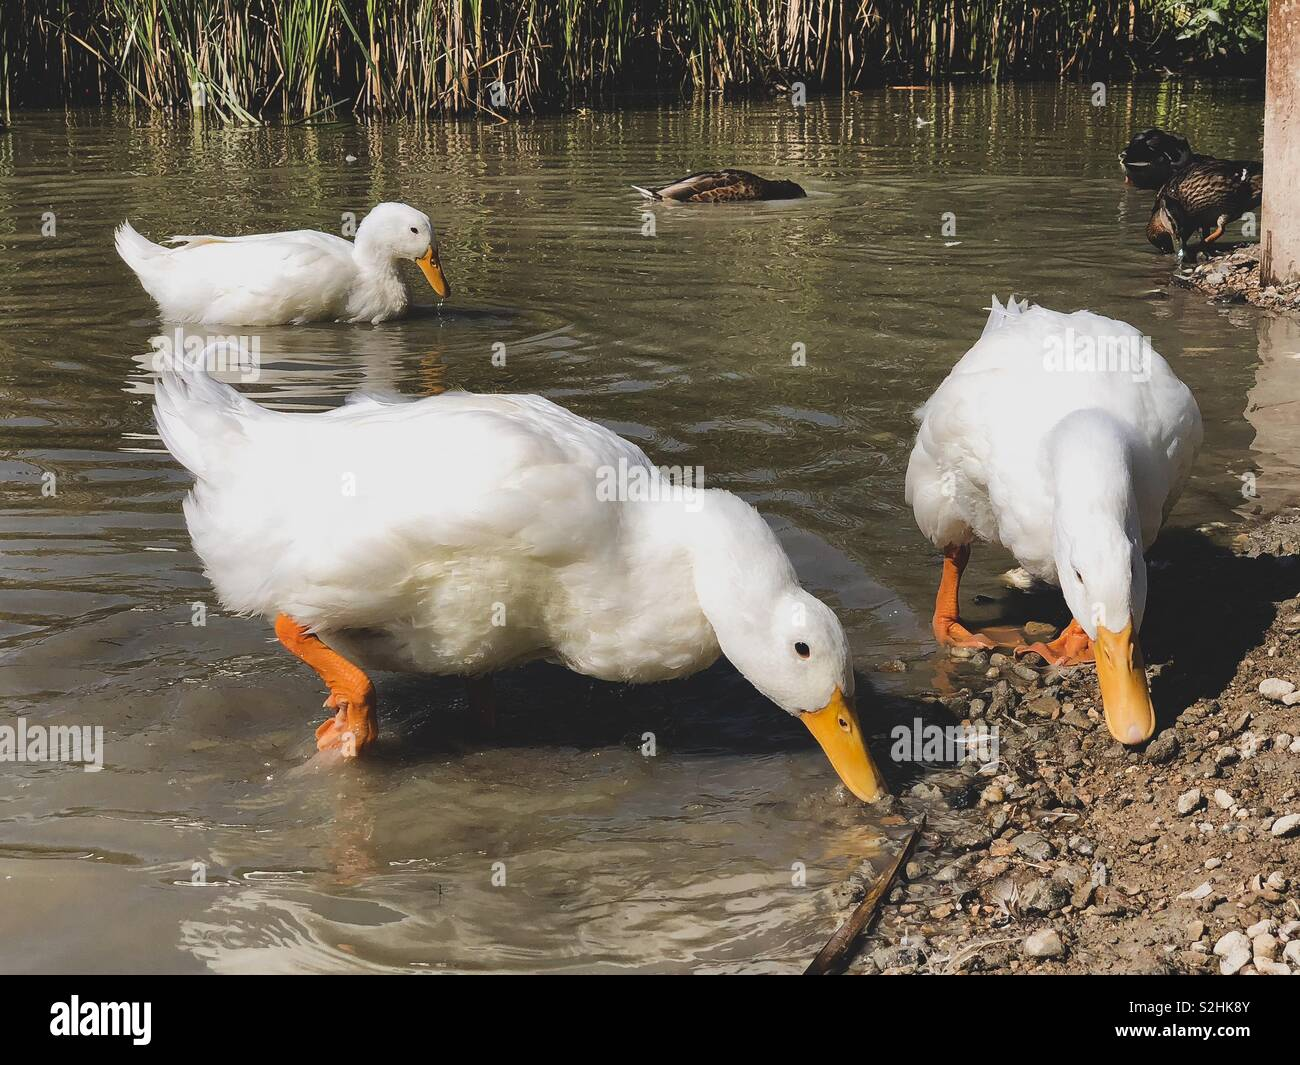 Heavy white Pekin Ducks searching for food in shallow water - Stock Image